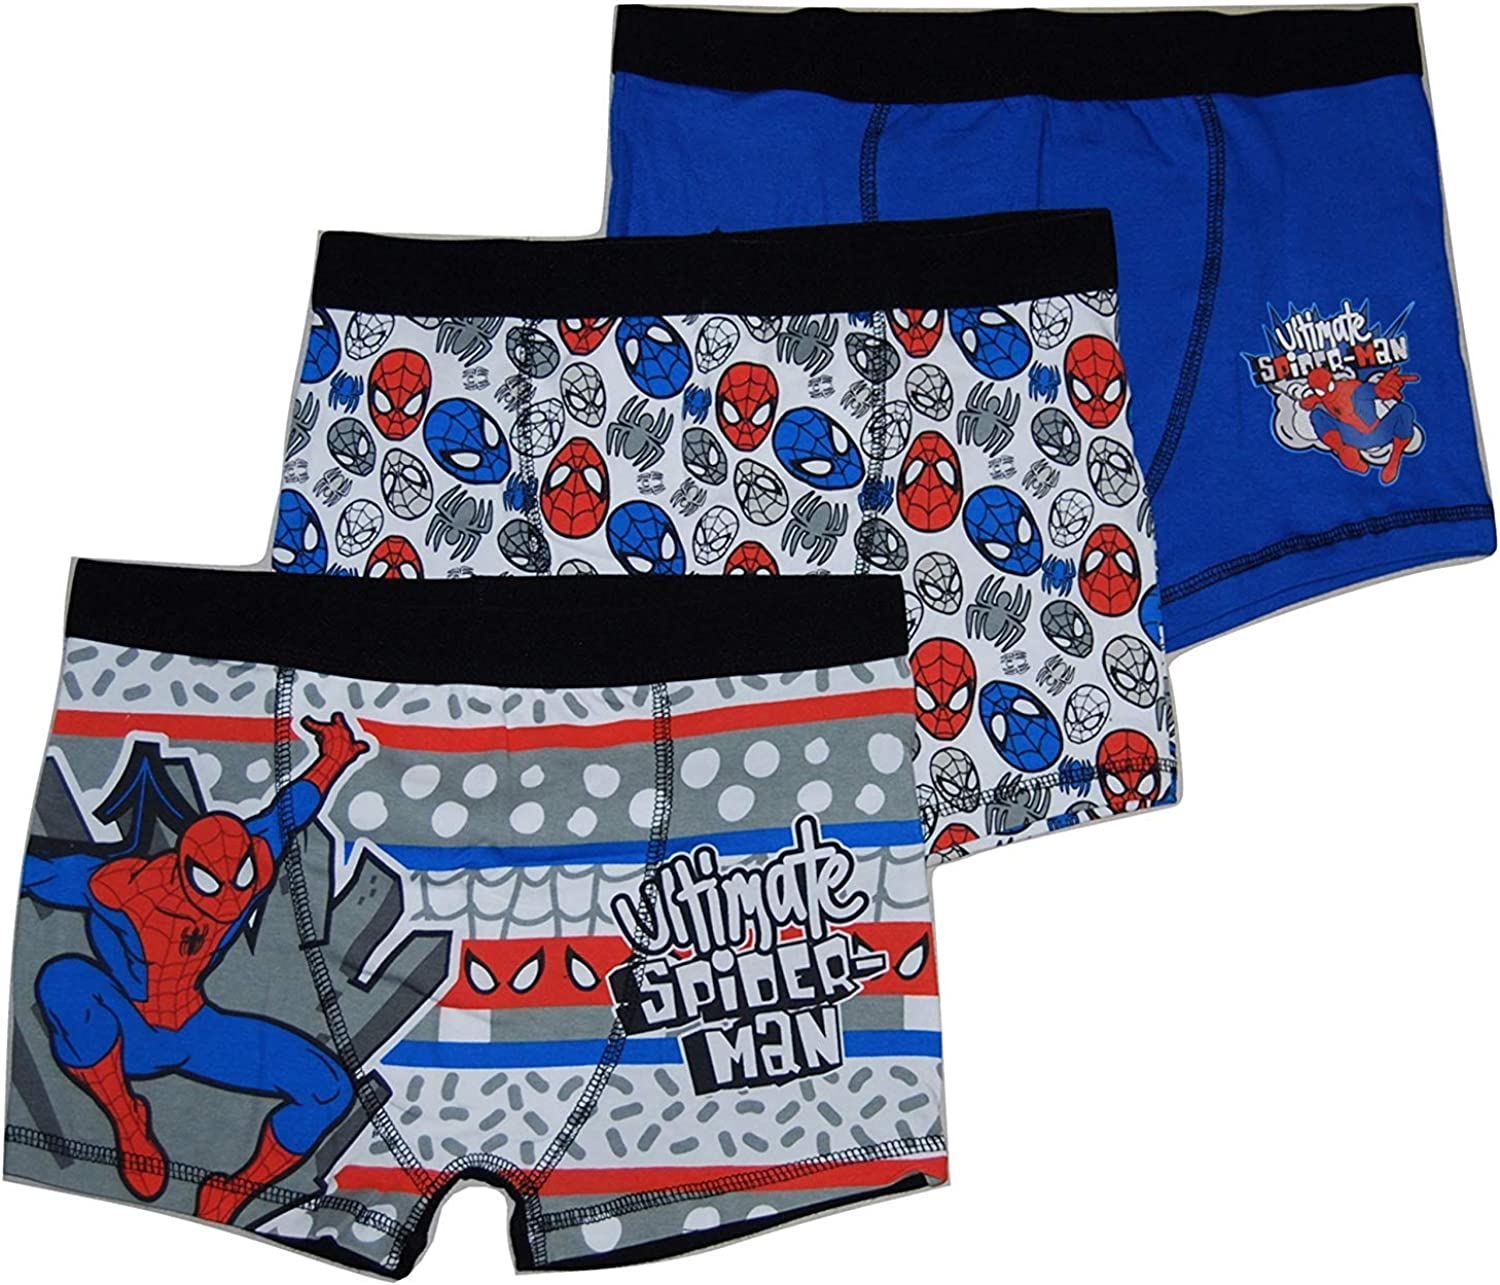 Marvel Spiderman Boys Pants 100/% Soft Cotton Pants Baby Boys Toddler Underpants Trunks Short Boxers 2 to 6 Years Childrens Underwear Multipack of 5 Briefs